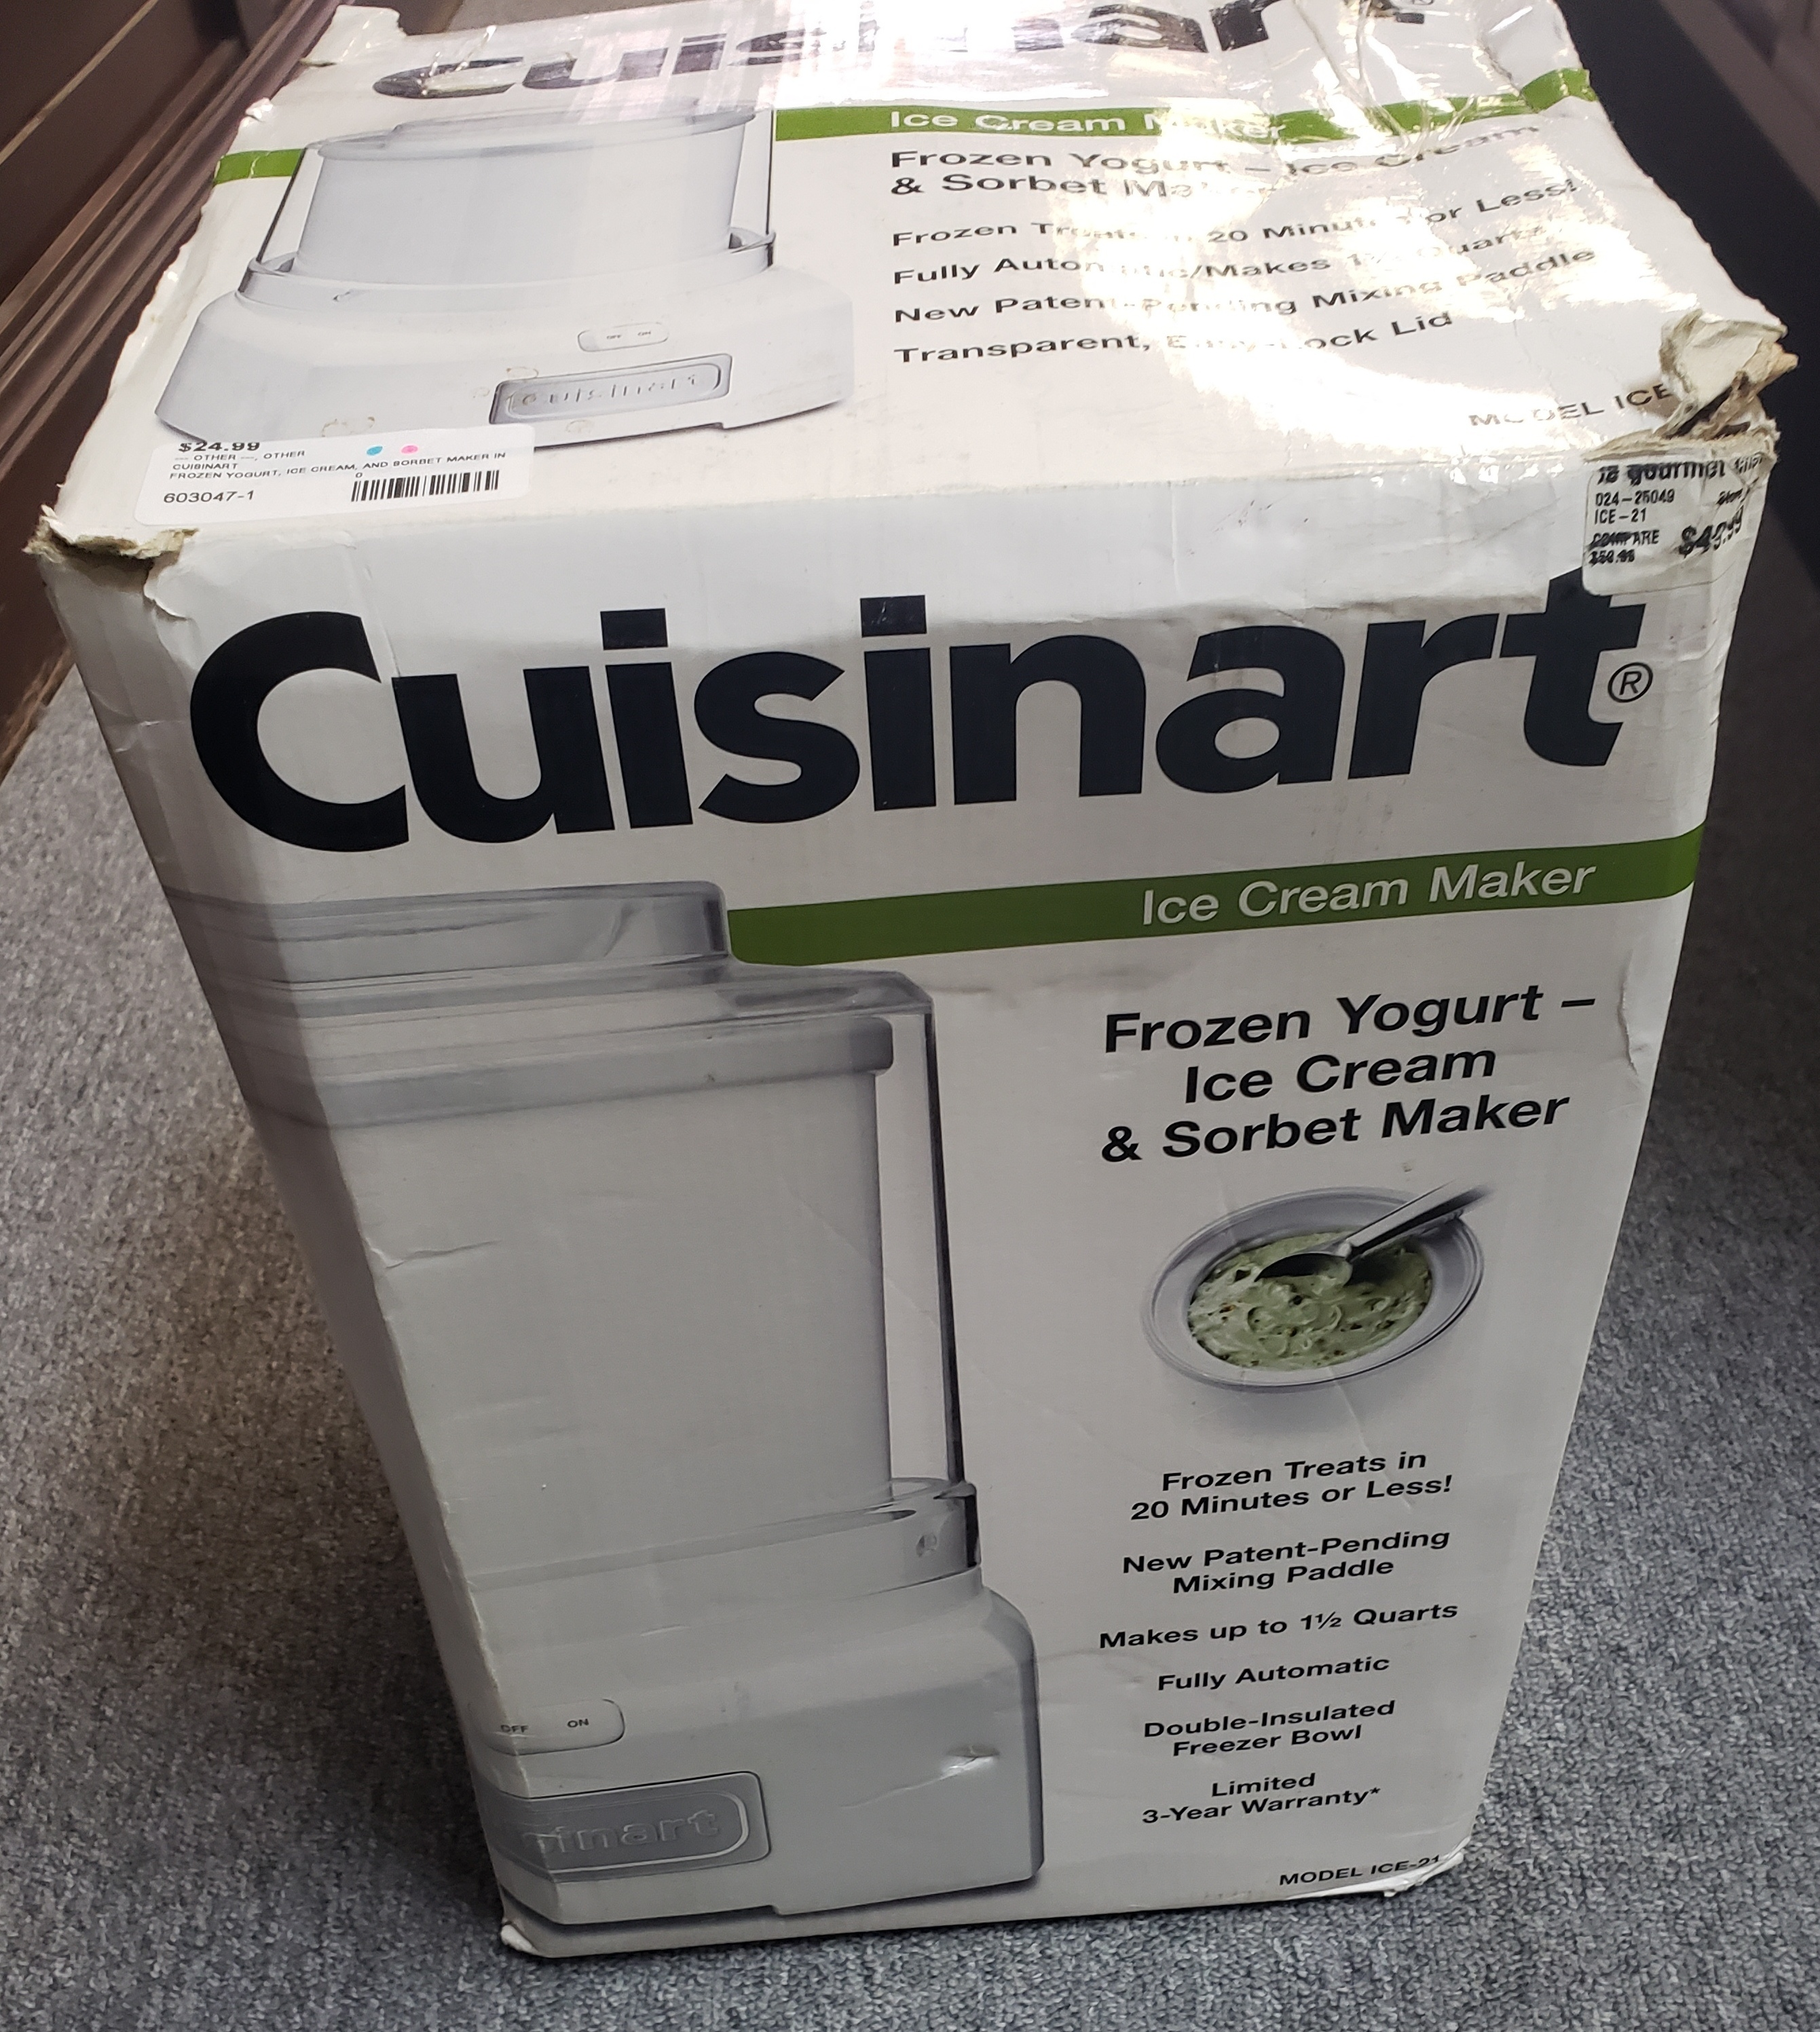 CUISINART - FROZEN YOGURT, ICE CREAM, AND SORBET MAKER